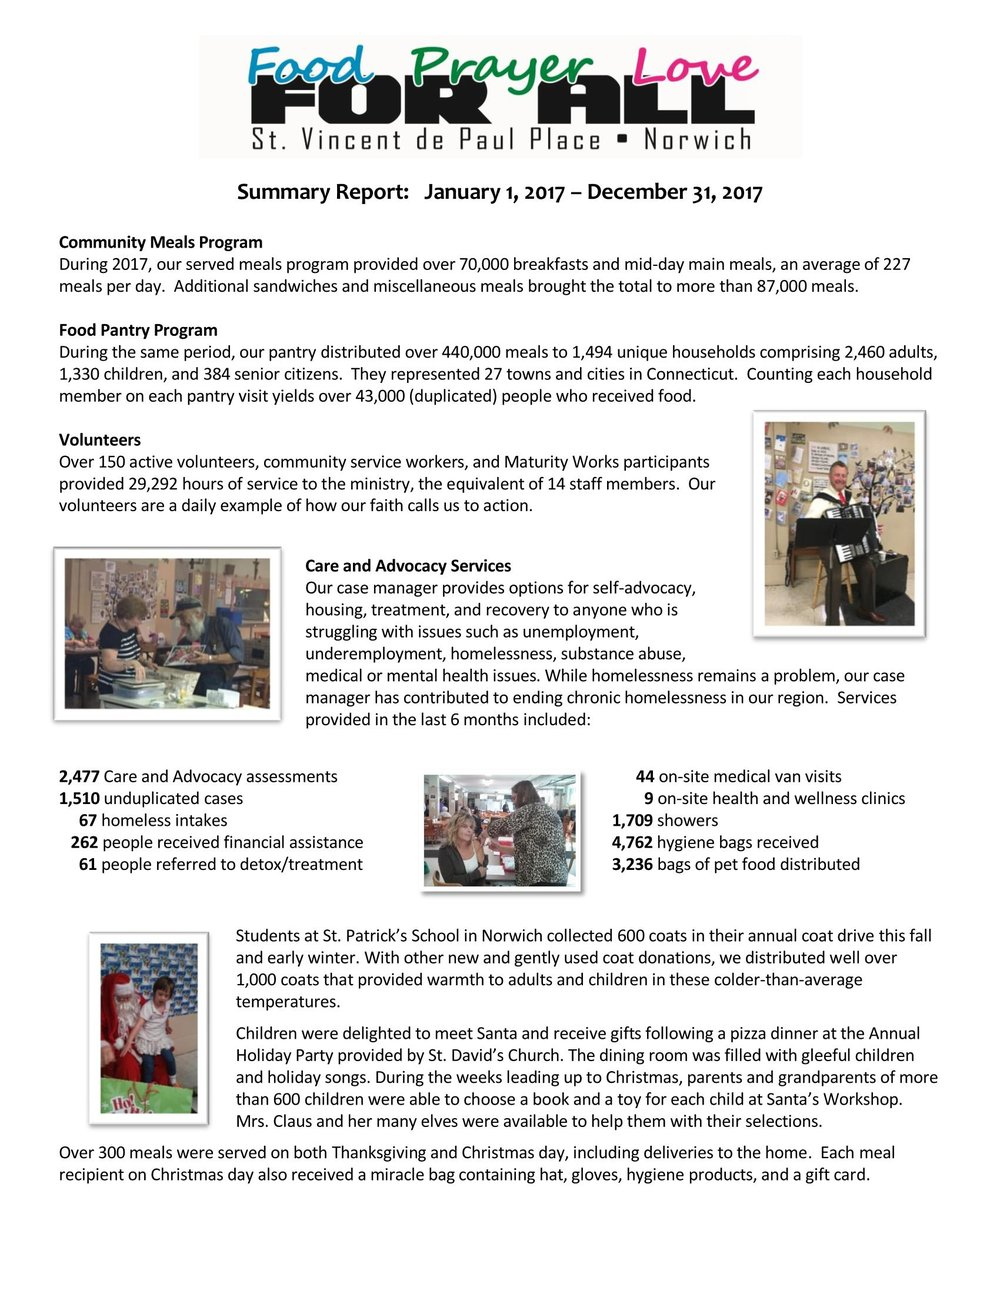 Summary_Report_2017_Jan-Dec_Page_1.jpeg